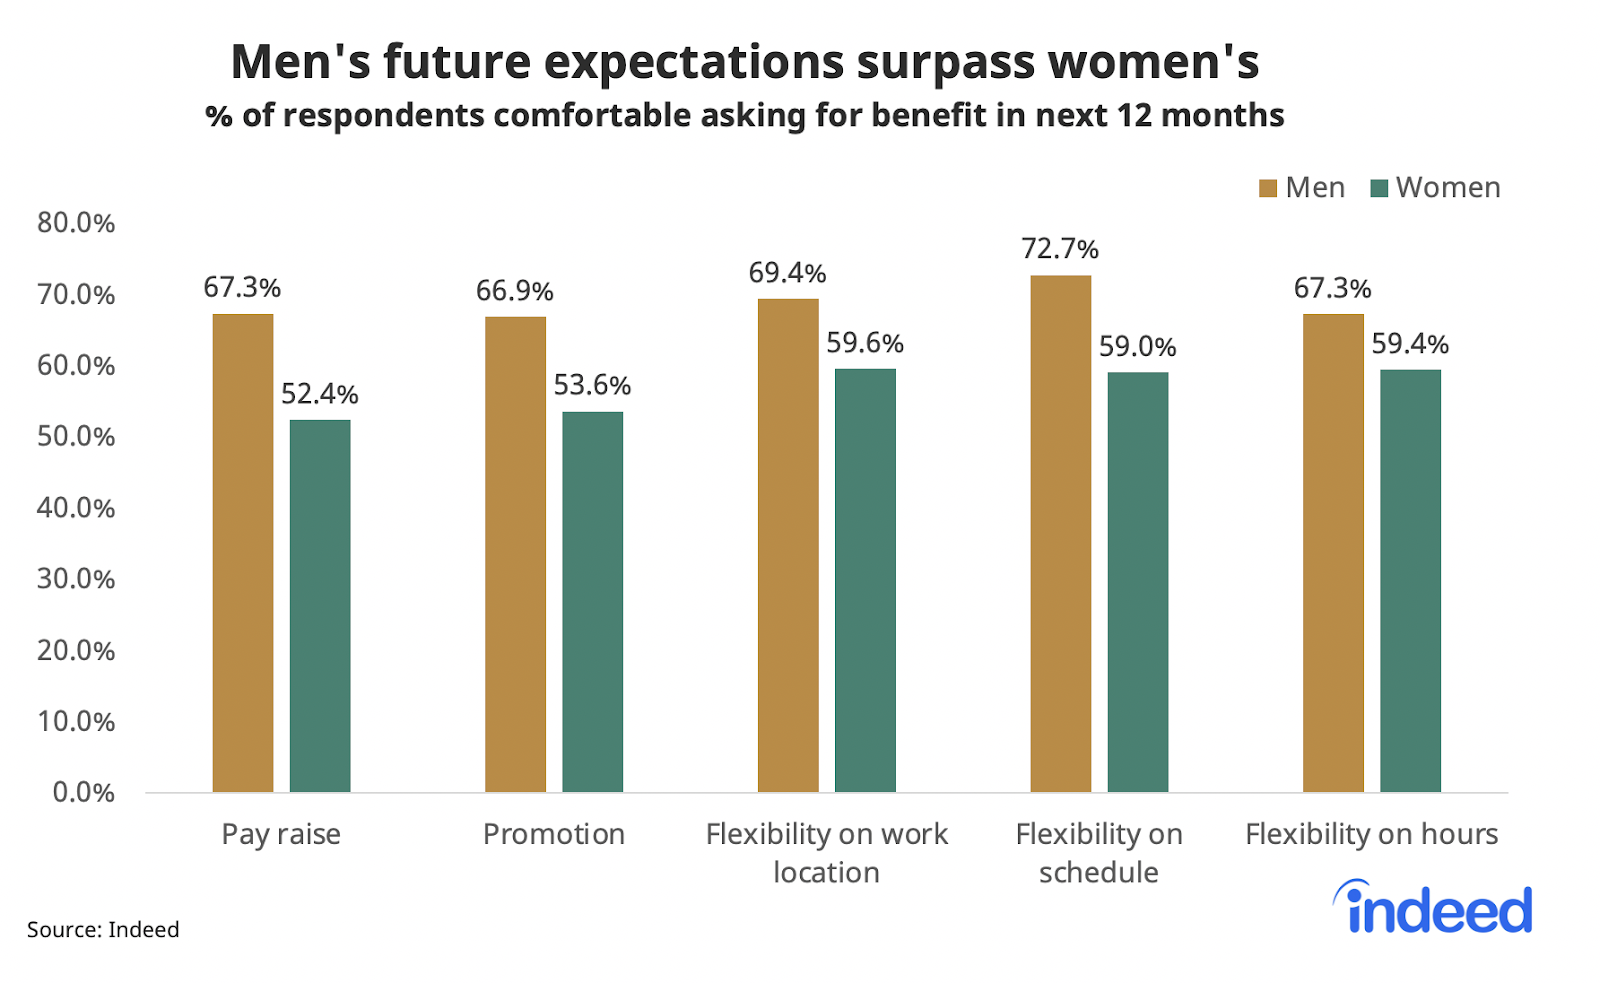 Double bar chart showing men's future expectations surpass women's in the workplace